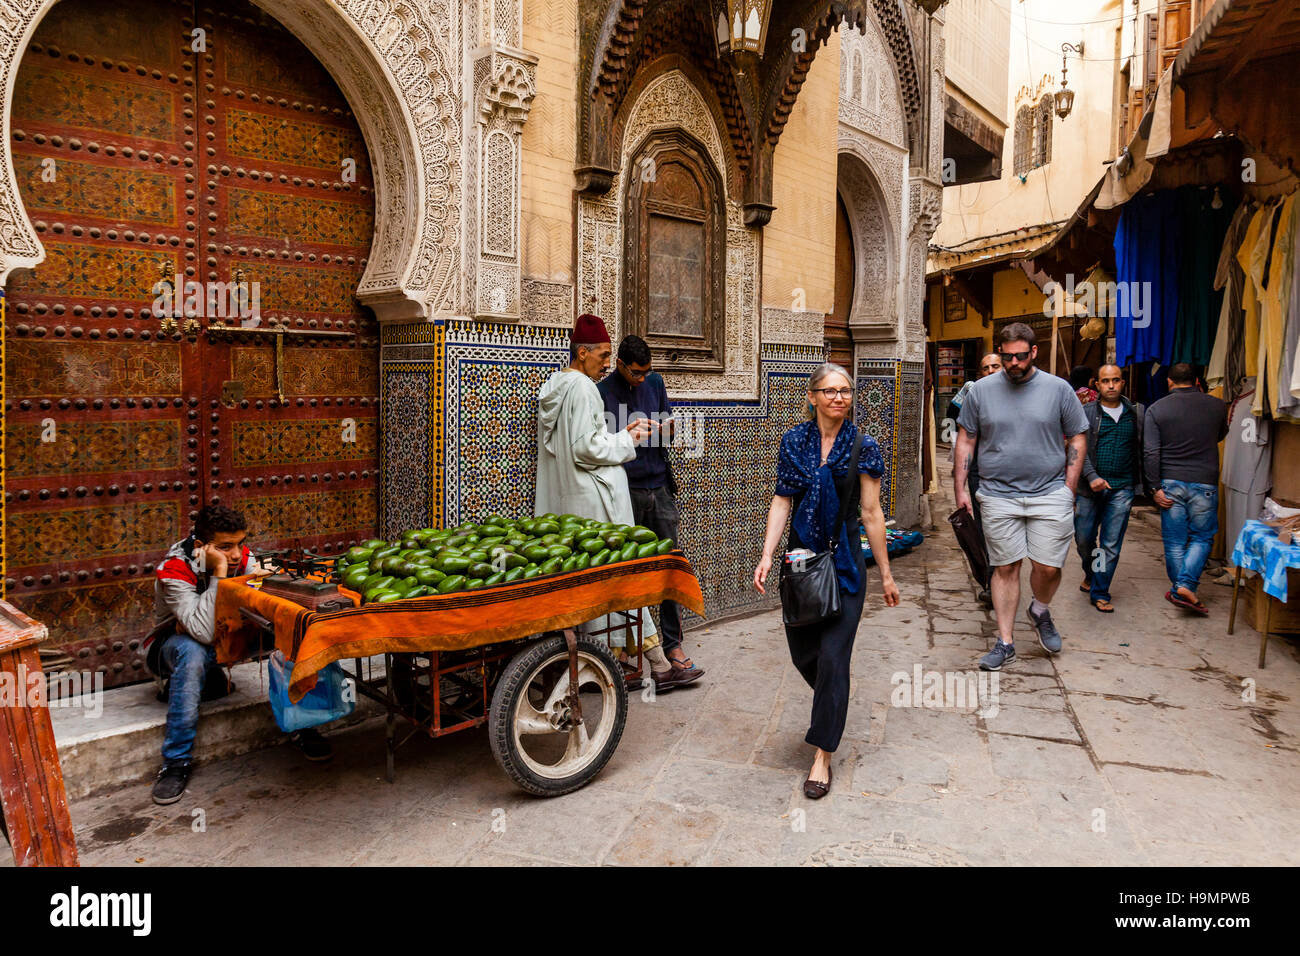 Life In The Medina, Fez el Bali, Fez, Morocco Stock Photo